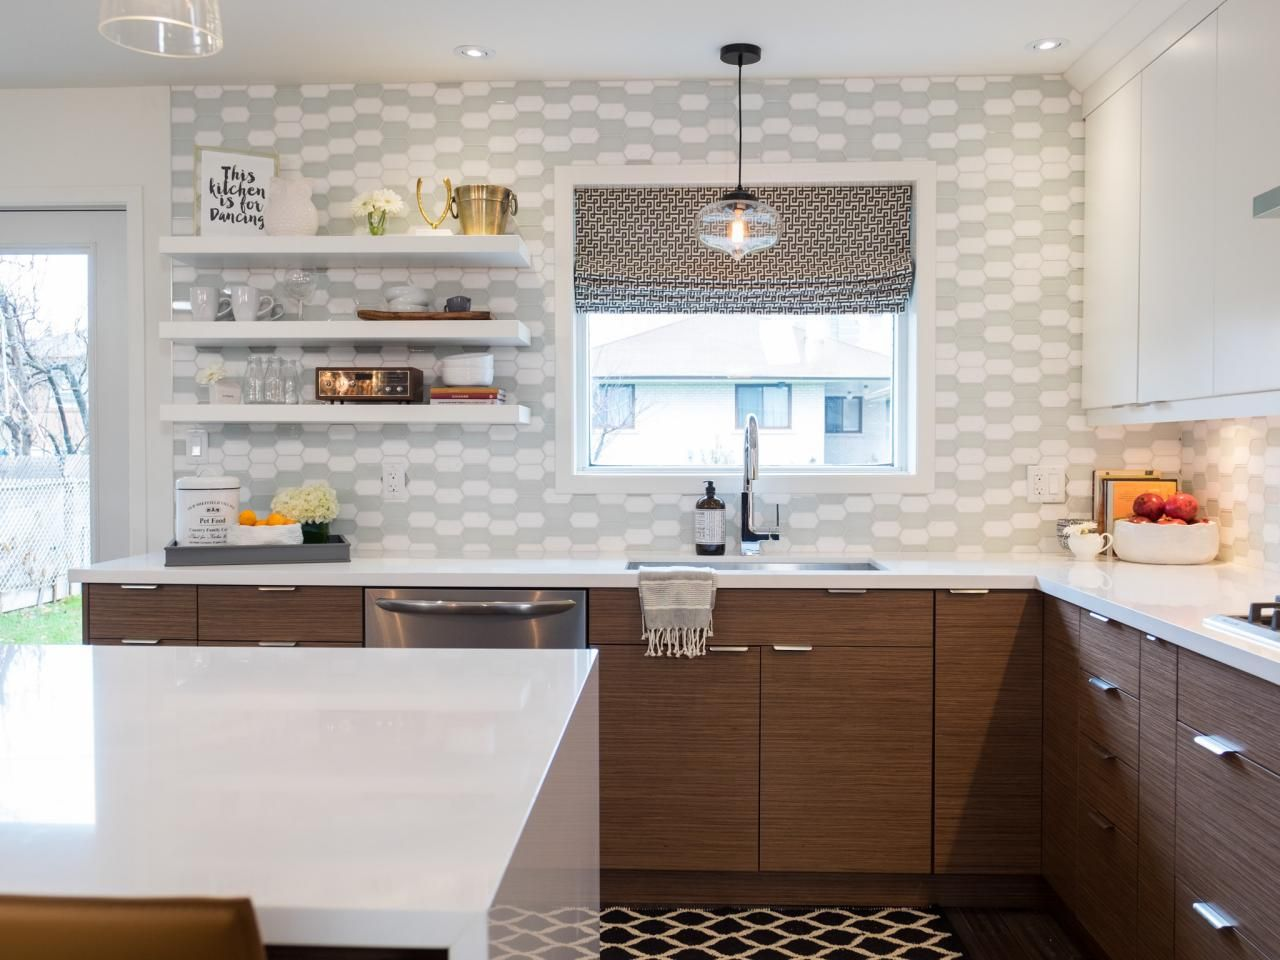 Find The Best Of Property Brothers From HGTV Kitchen Pinterest - How to get hgtv to remodel my kitchen for free